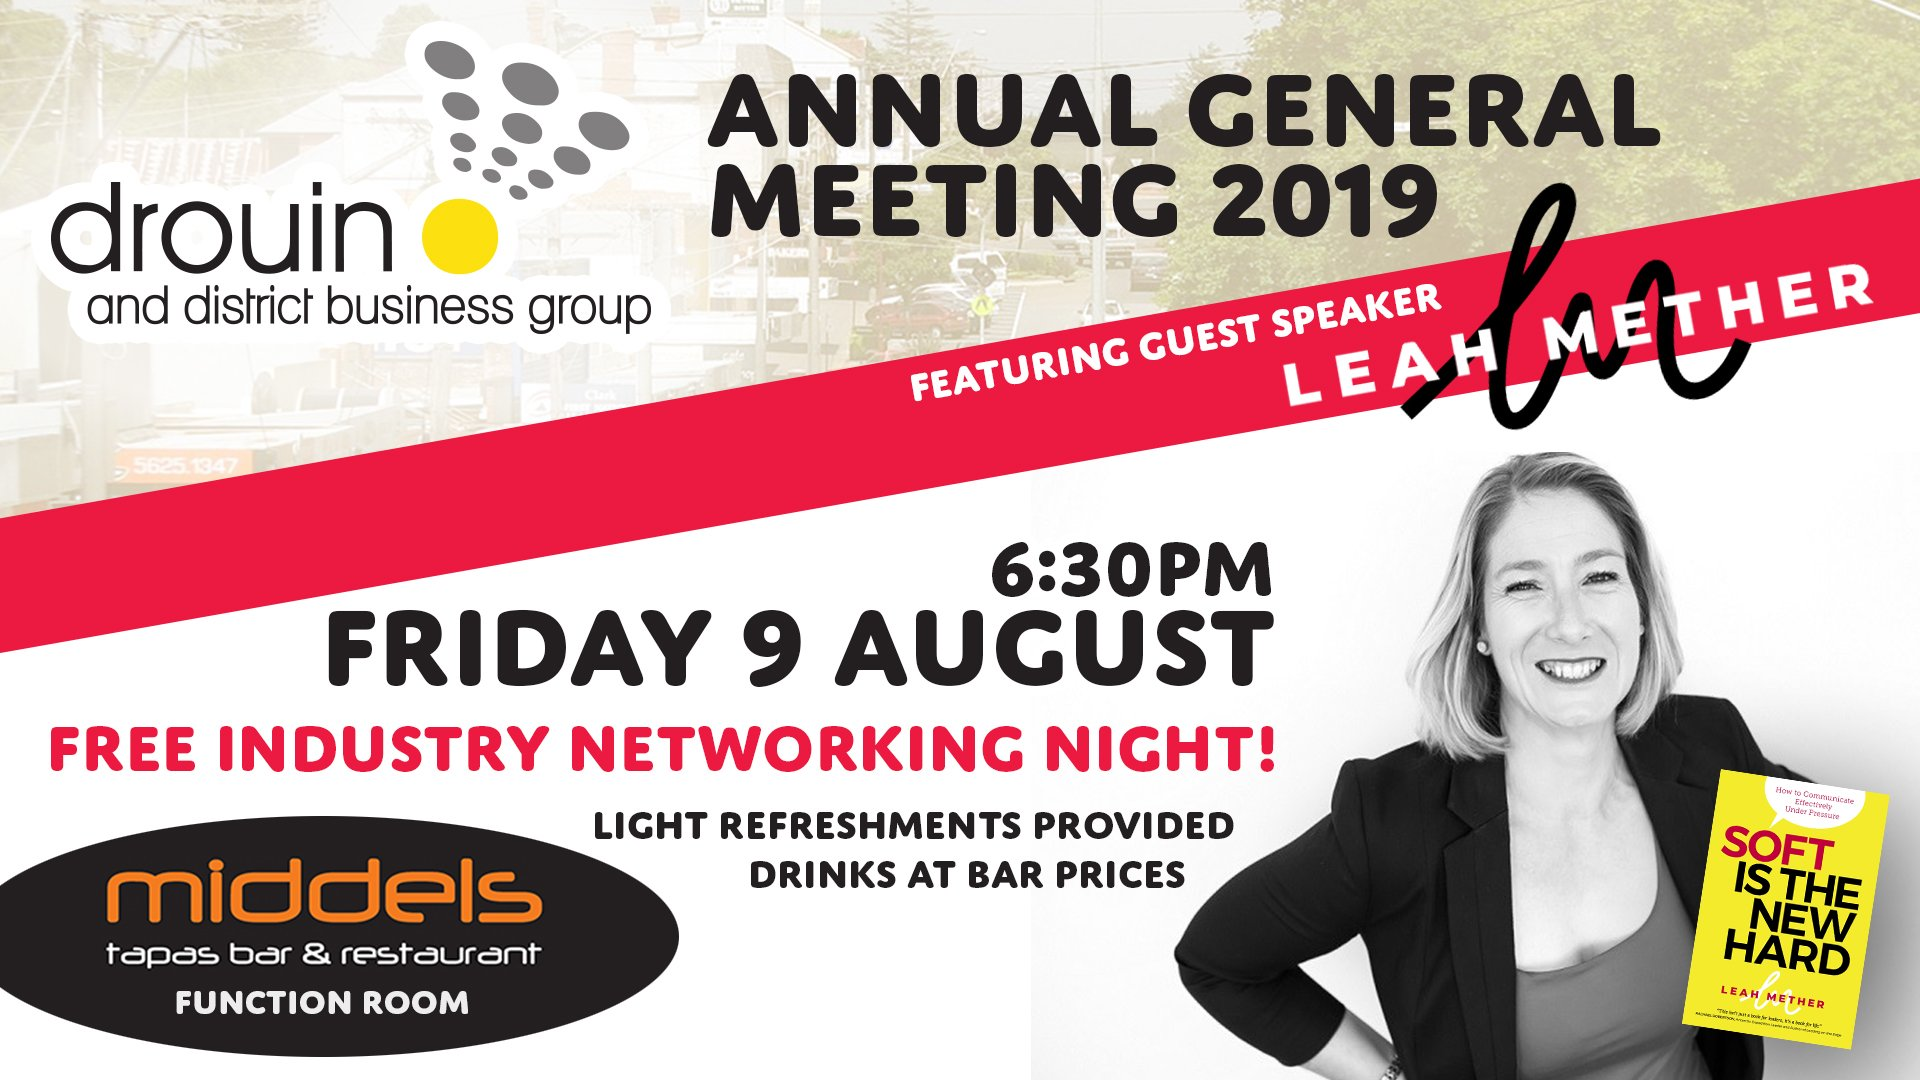 Drouin District Business Group AGM 2019 social media